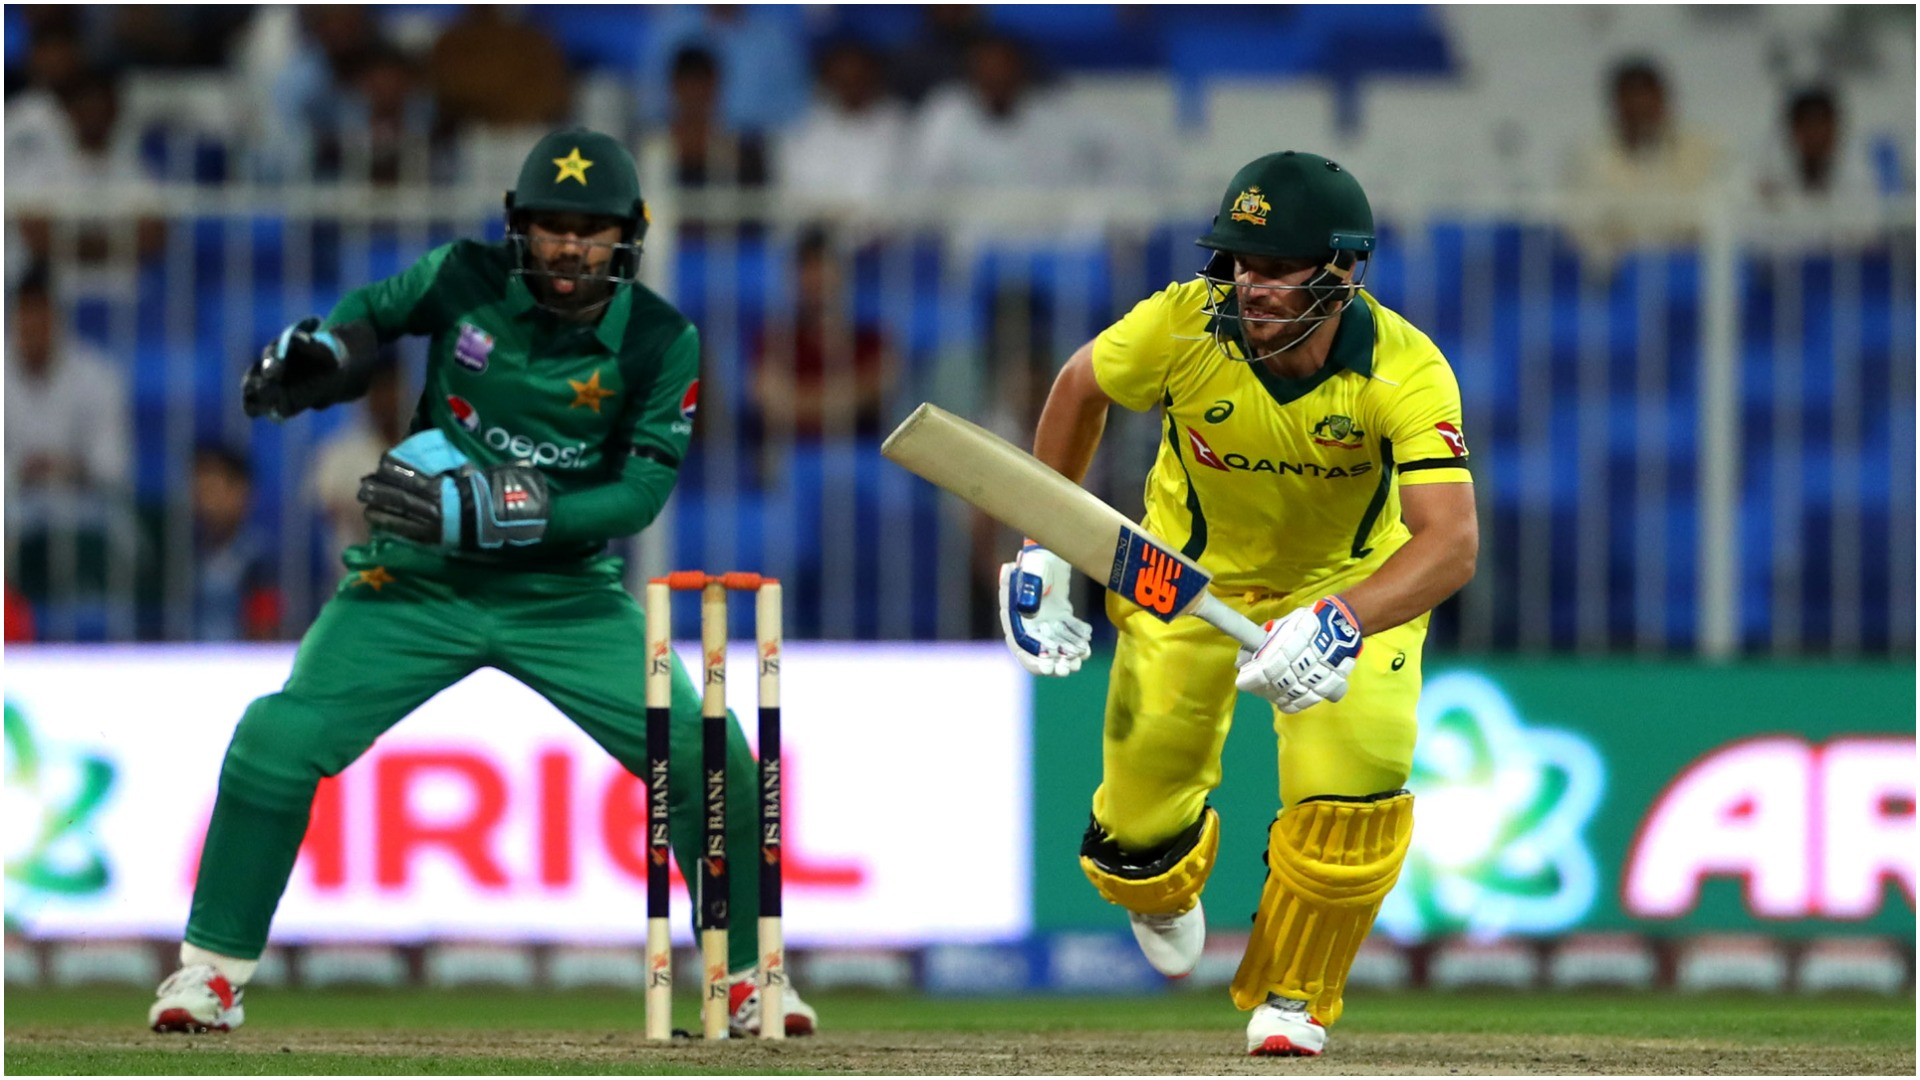 Finch and Marsh lift Australia past Pakistan